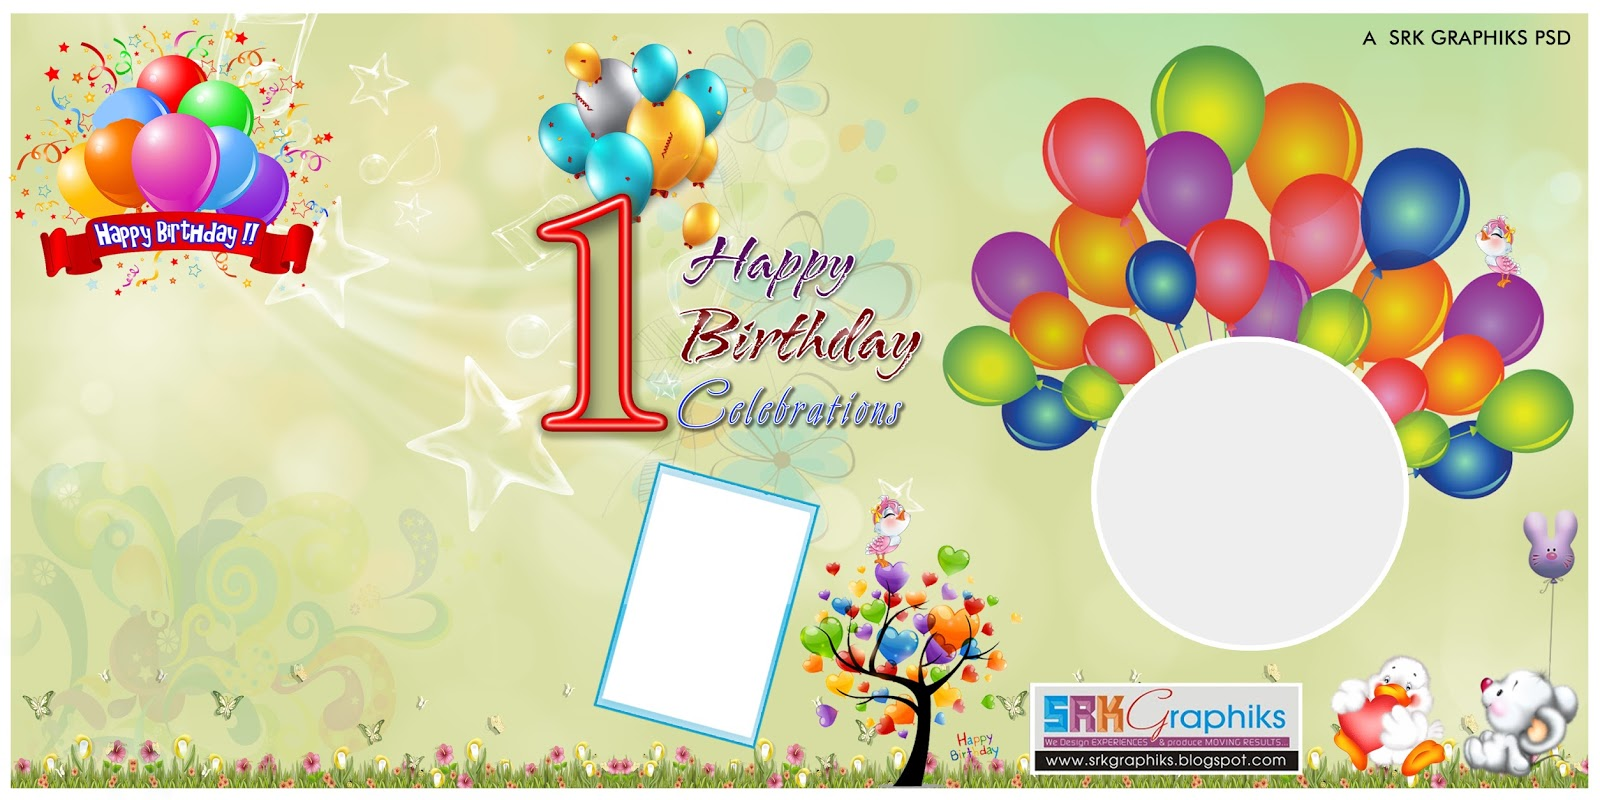 birthday banner design photoshop template for free  srk graphics